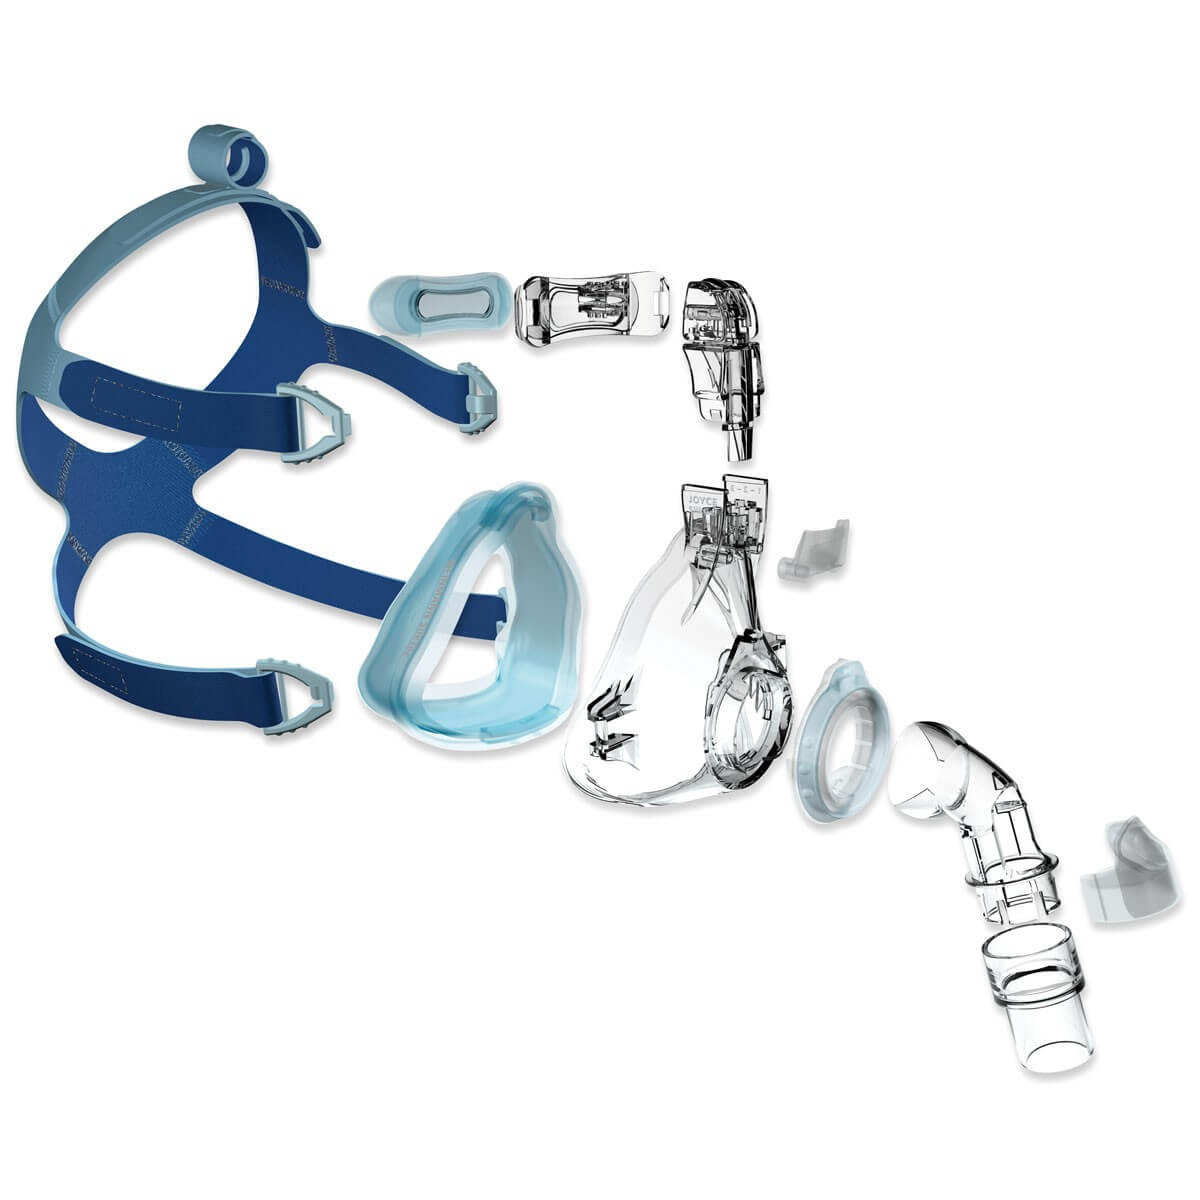 CPAP-Maske Joyce SilkGel Full Face von Löwenstein Medical